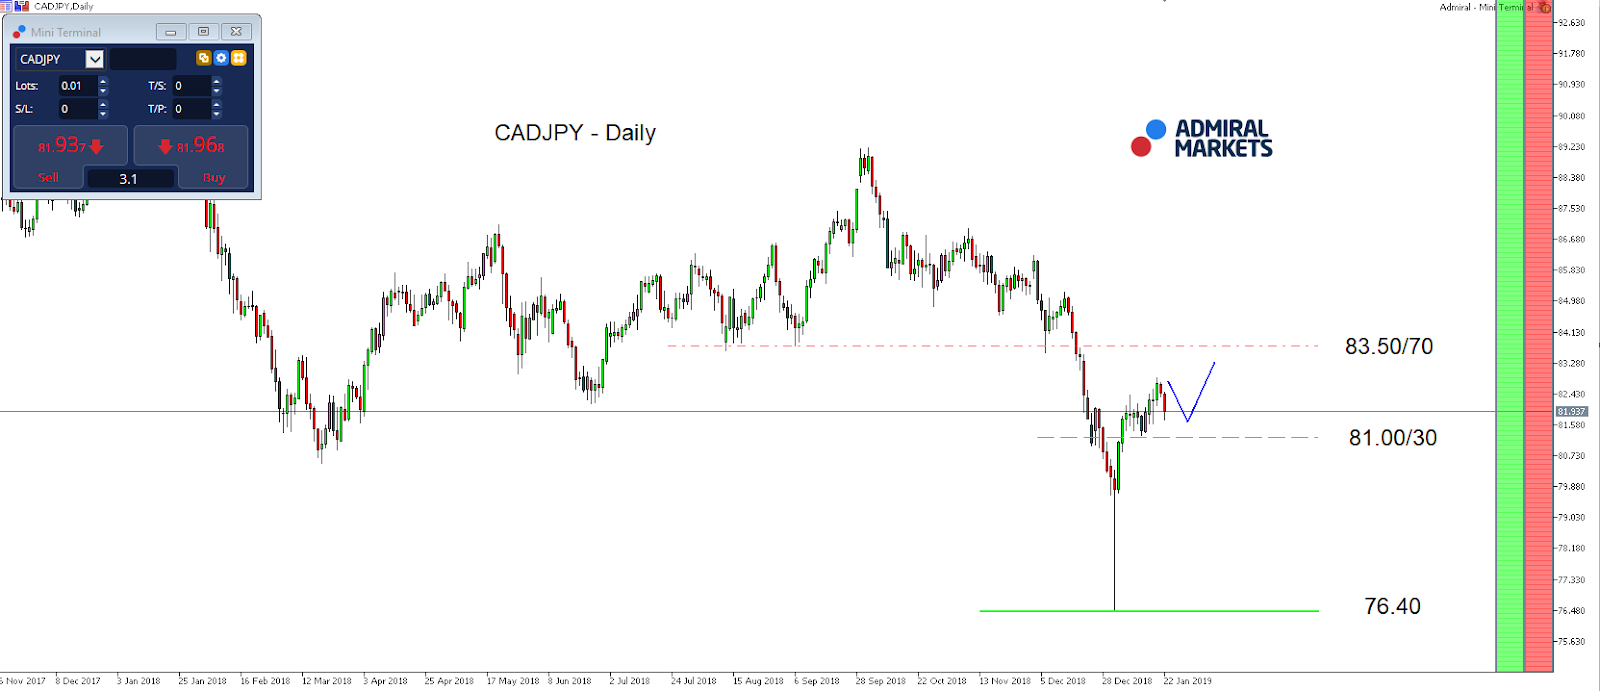 CADJPY Daily Chart - MetaTrader 5 Supreme Edition